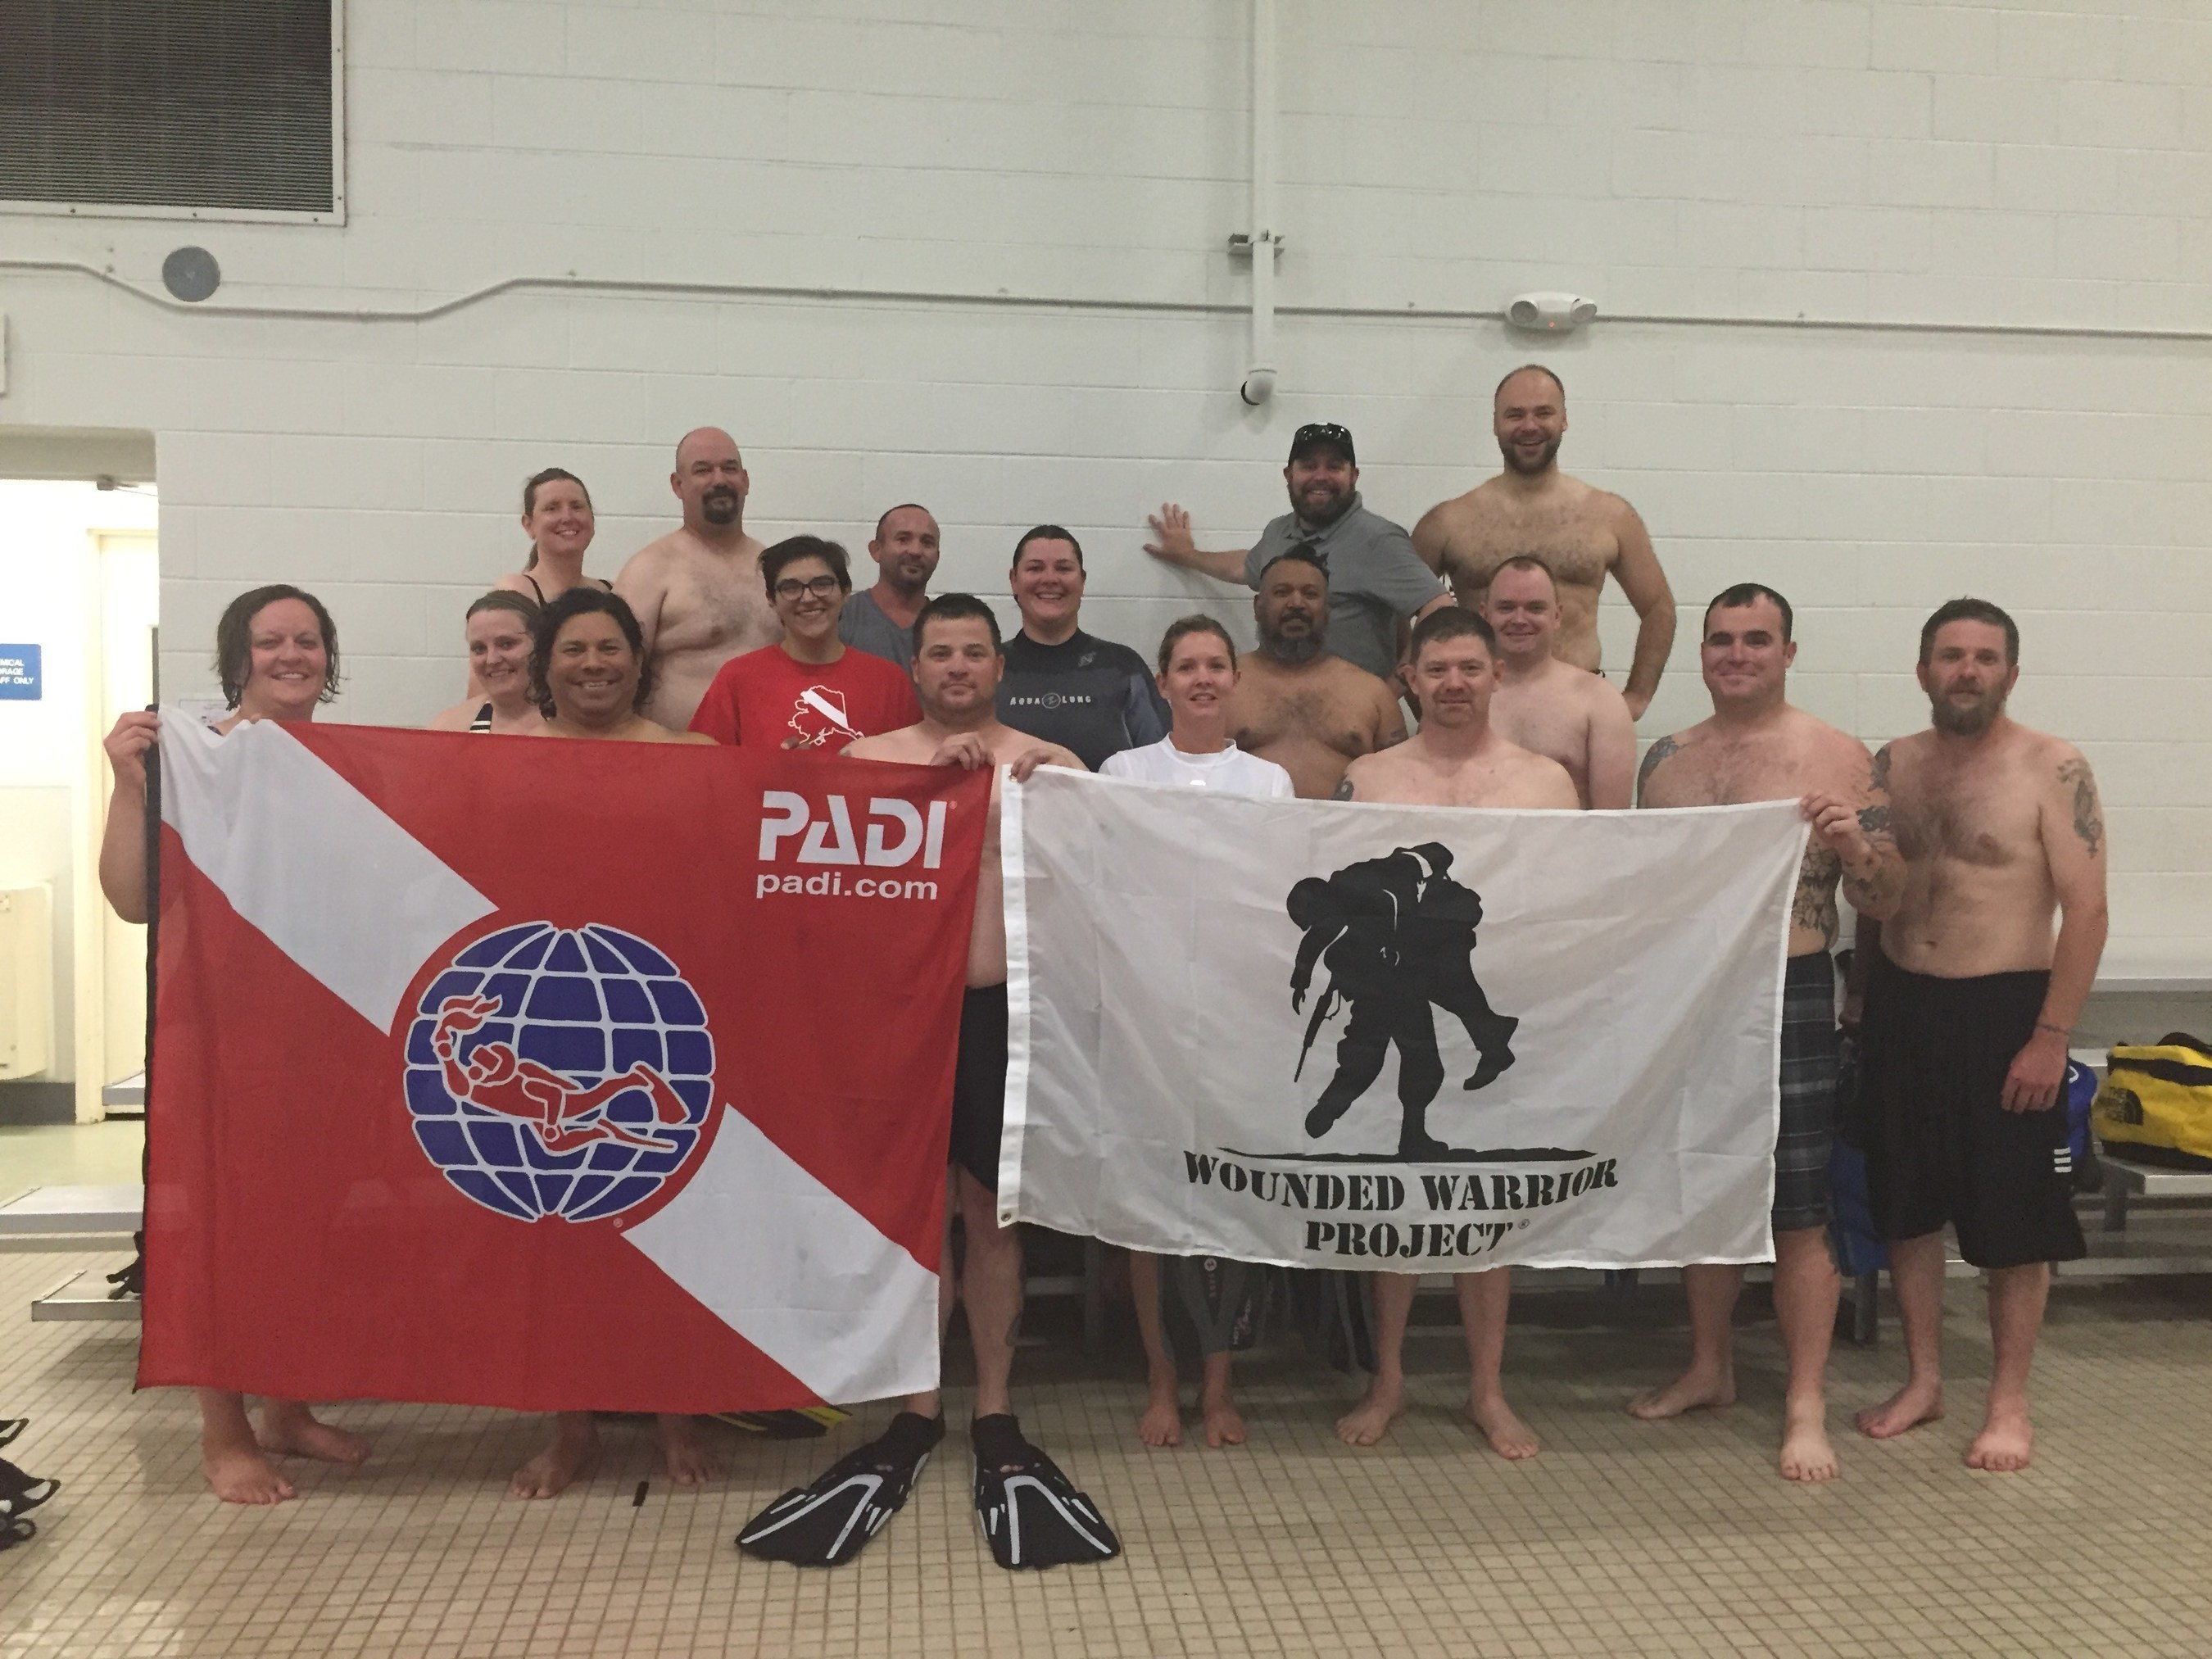 Injured veterans joined Wounded Warrior Project and teachers from the Professional Association of Diving Instructors for an introductory course to scuba diving.